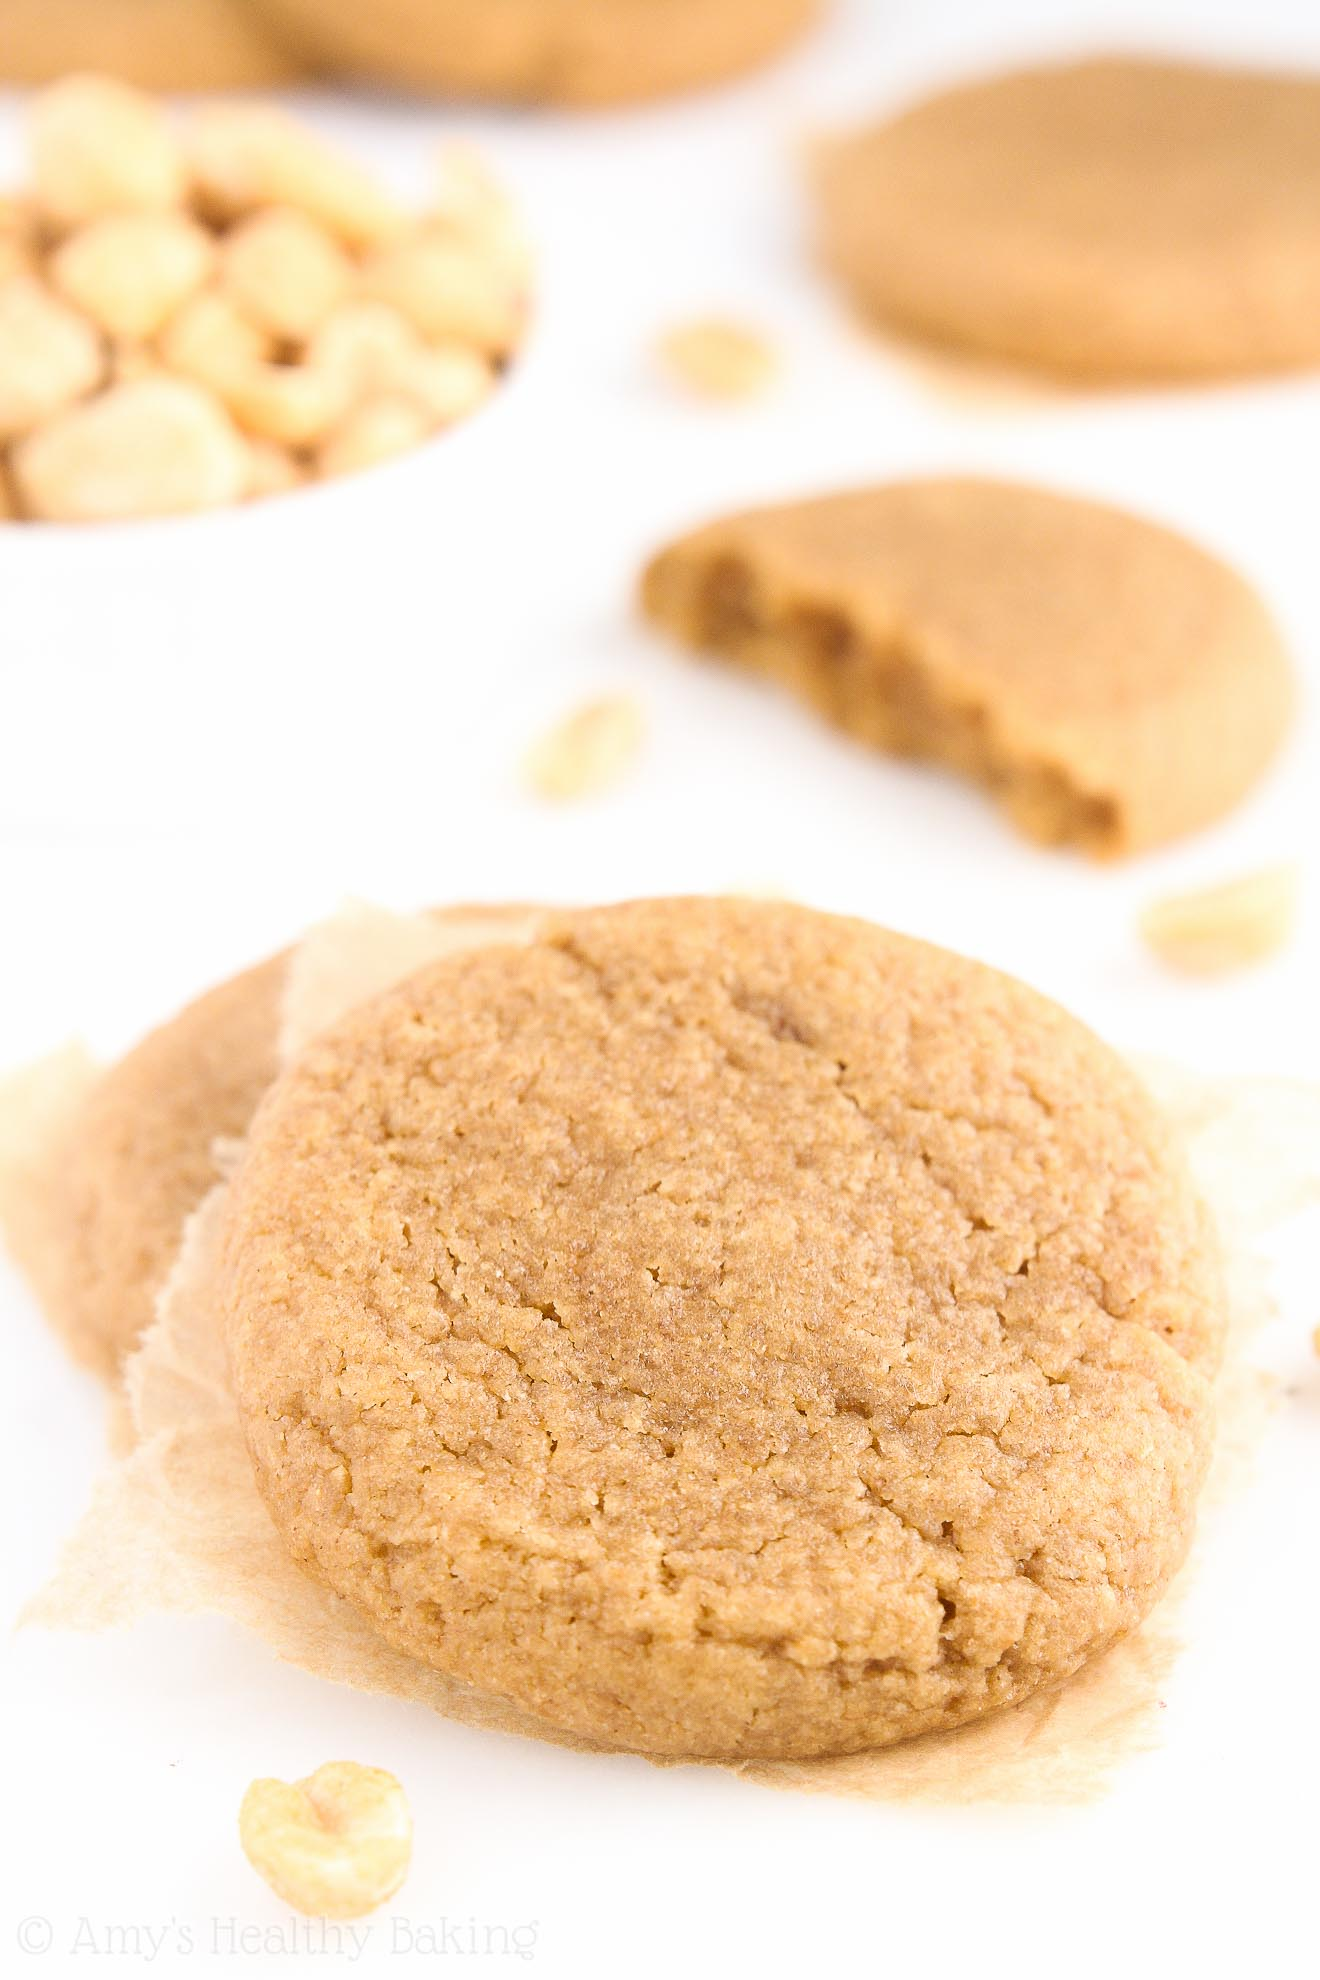 the ultimate peanut butter cookie recipe These are the best peanut butter cookies - soft and studded with chocolate chips and peanut butter chips peanut butter cookies are my favorite cookie ever and this recipe will not dissapoint.